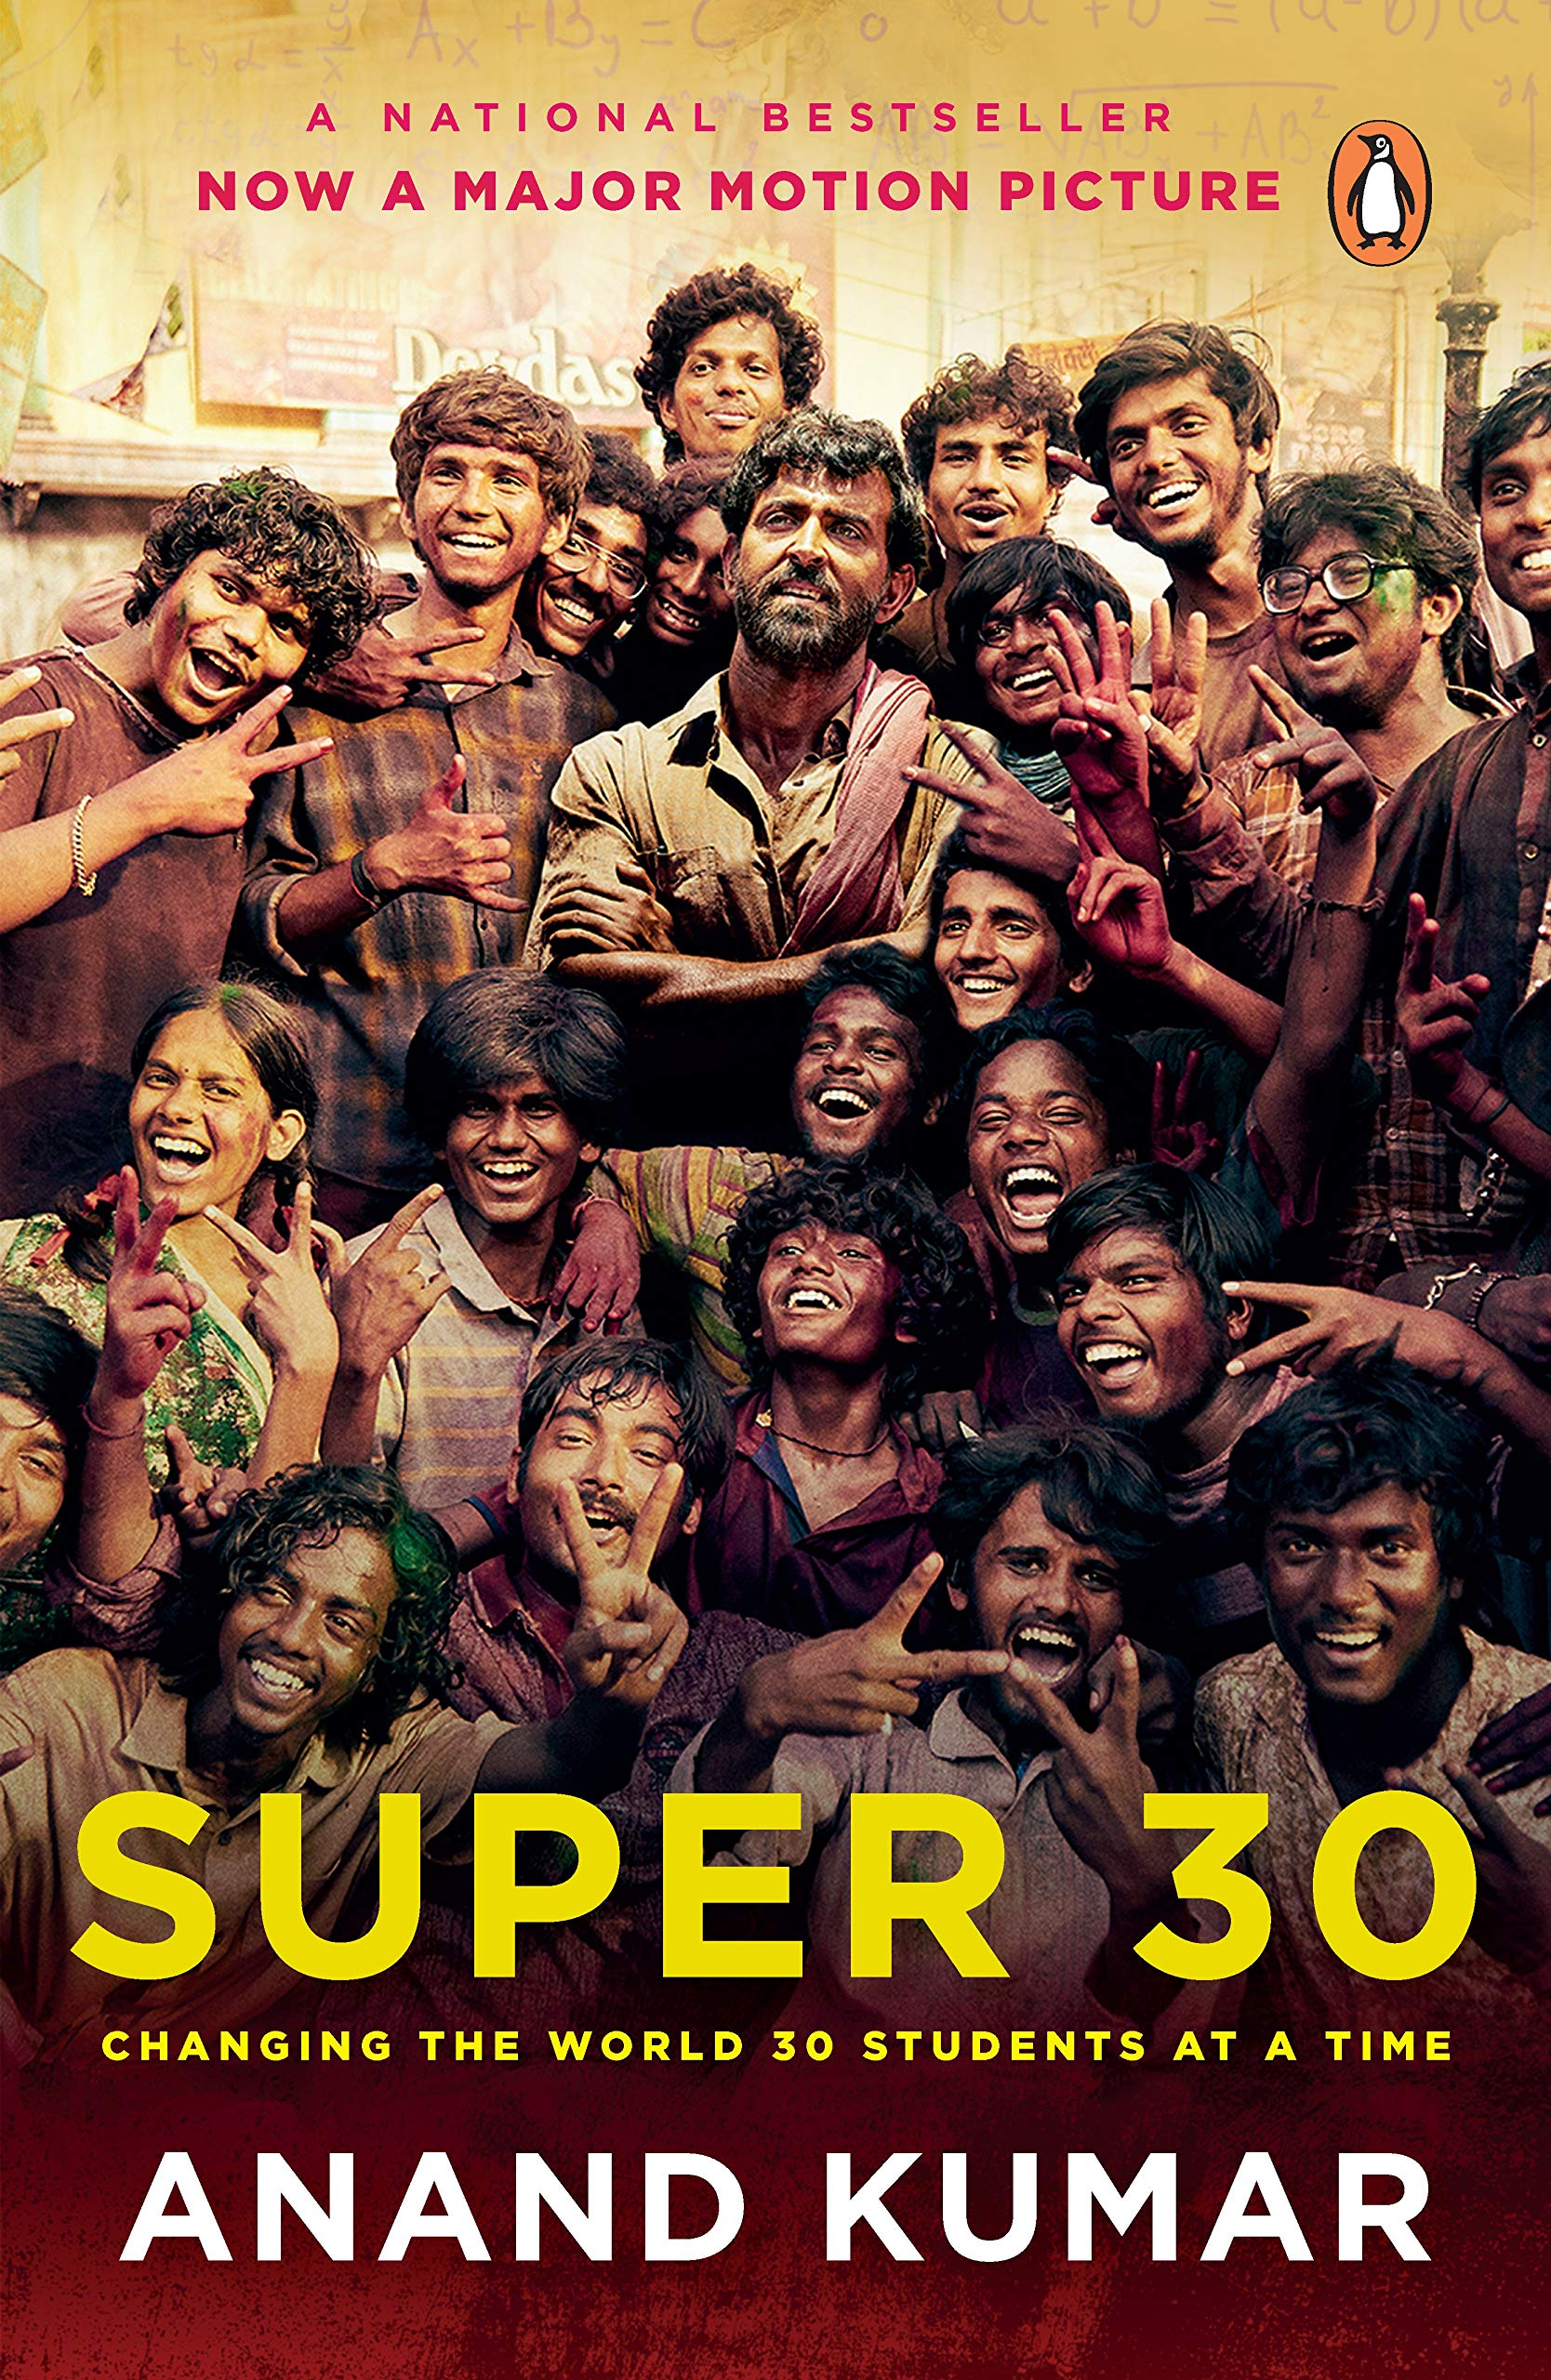 Super 30 Changing The World 30 Students At A Time Kumar Anand 9780143426448 Amazon Com Books